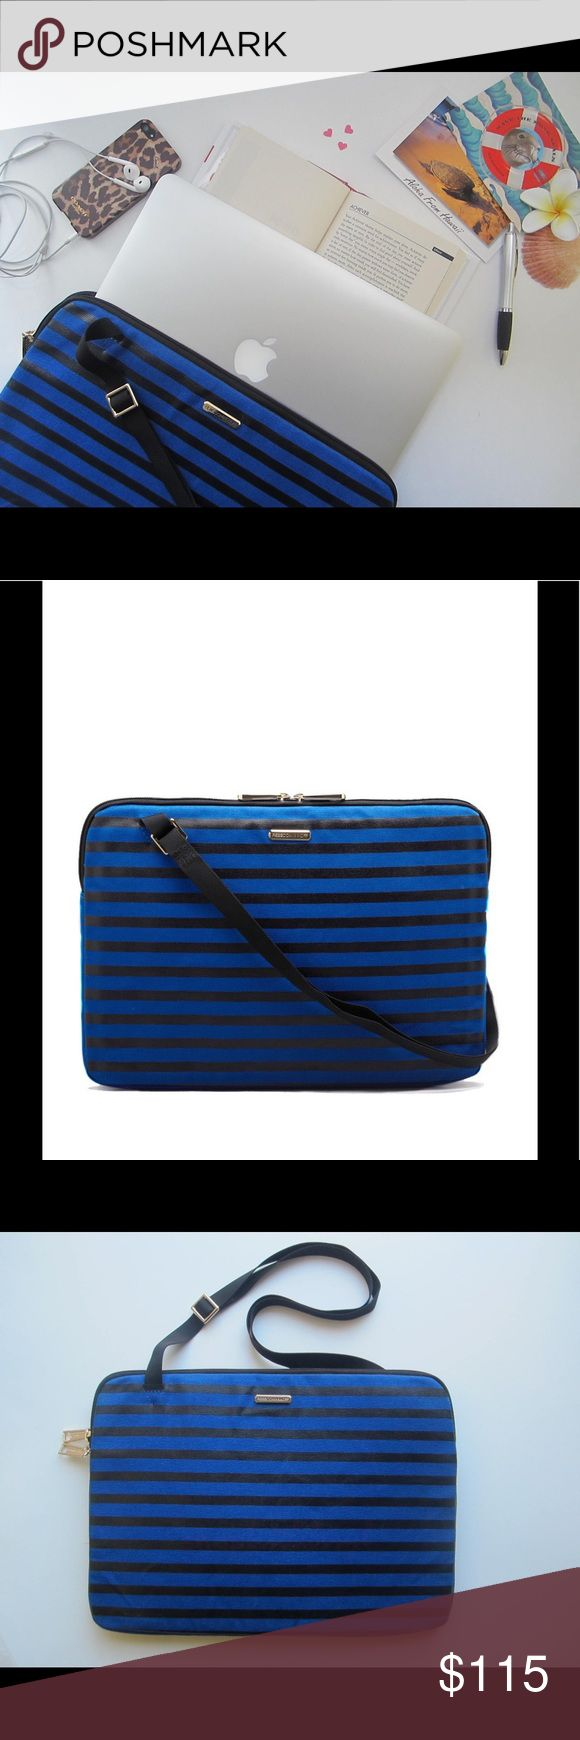 """Laptop Sleeve 15"""" Black and Blue Stripes 🆕 Opt for sleek, sophisticated, stylish, and modern minimalism canvas laptop sleeve. Perfect to carry your laptop to work, travel, or school.     ▫️Double zippered closure  ▫️Padded interior for laptop protection  ▫️Striped canvas  ▫️Adjustable carrying strap  ▫️Measures 15"""" L x 1"""" D x 10.75"""" H  ▫️Fits most 15"""" laptops. Model: MacBook Air 13.3"""", laptop not for sale  📌Minor scuff marks/dirt on the back of the bag from being handled as the """"store…"""